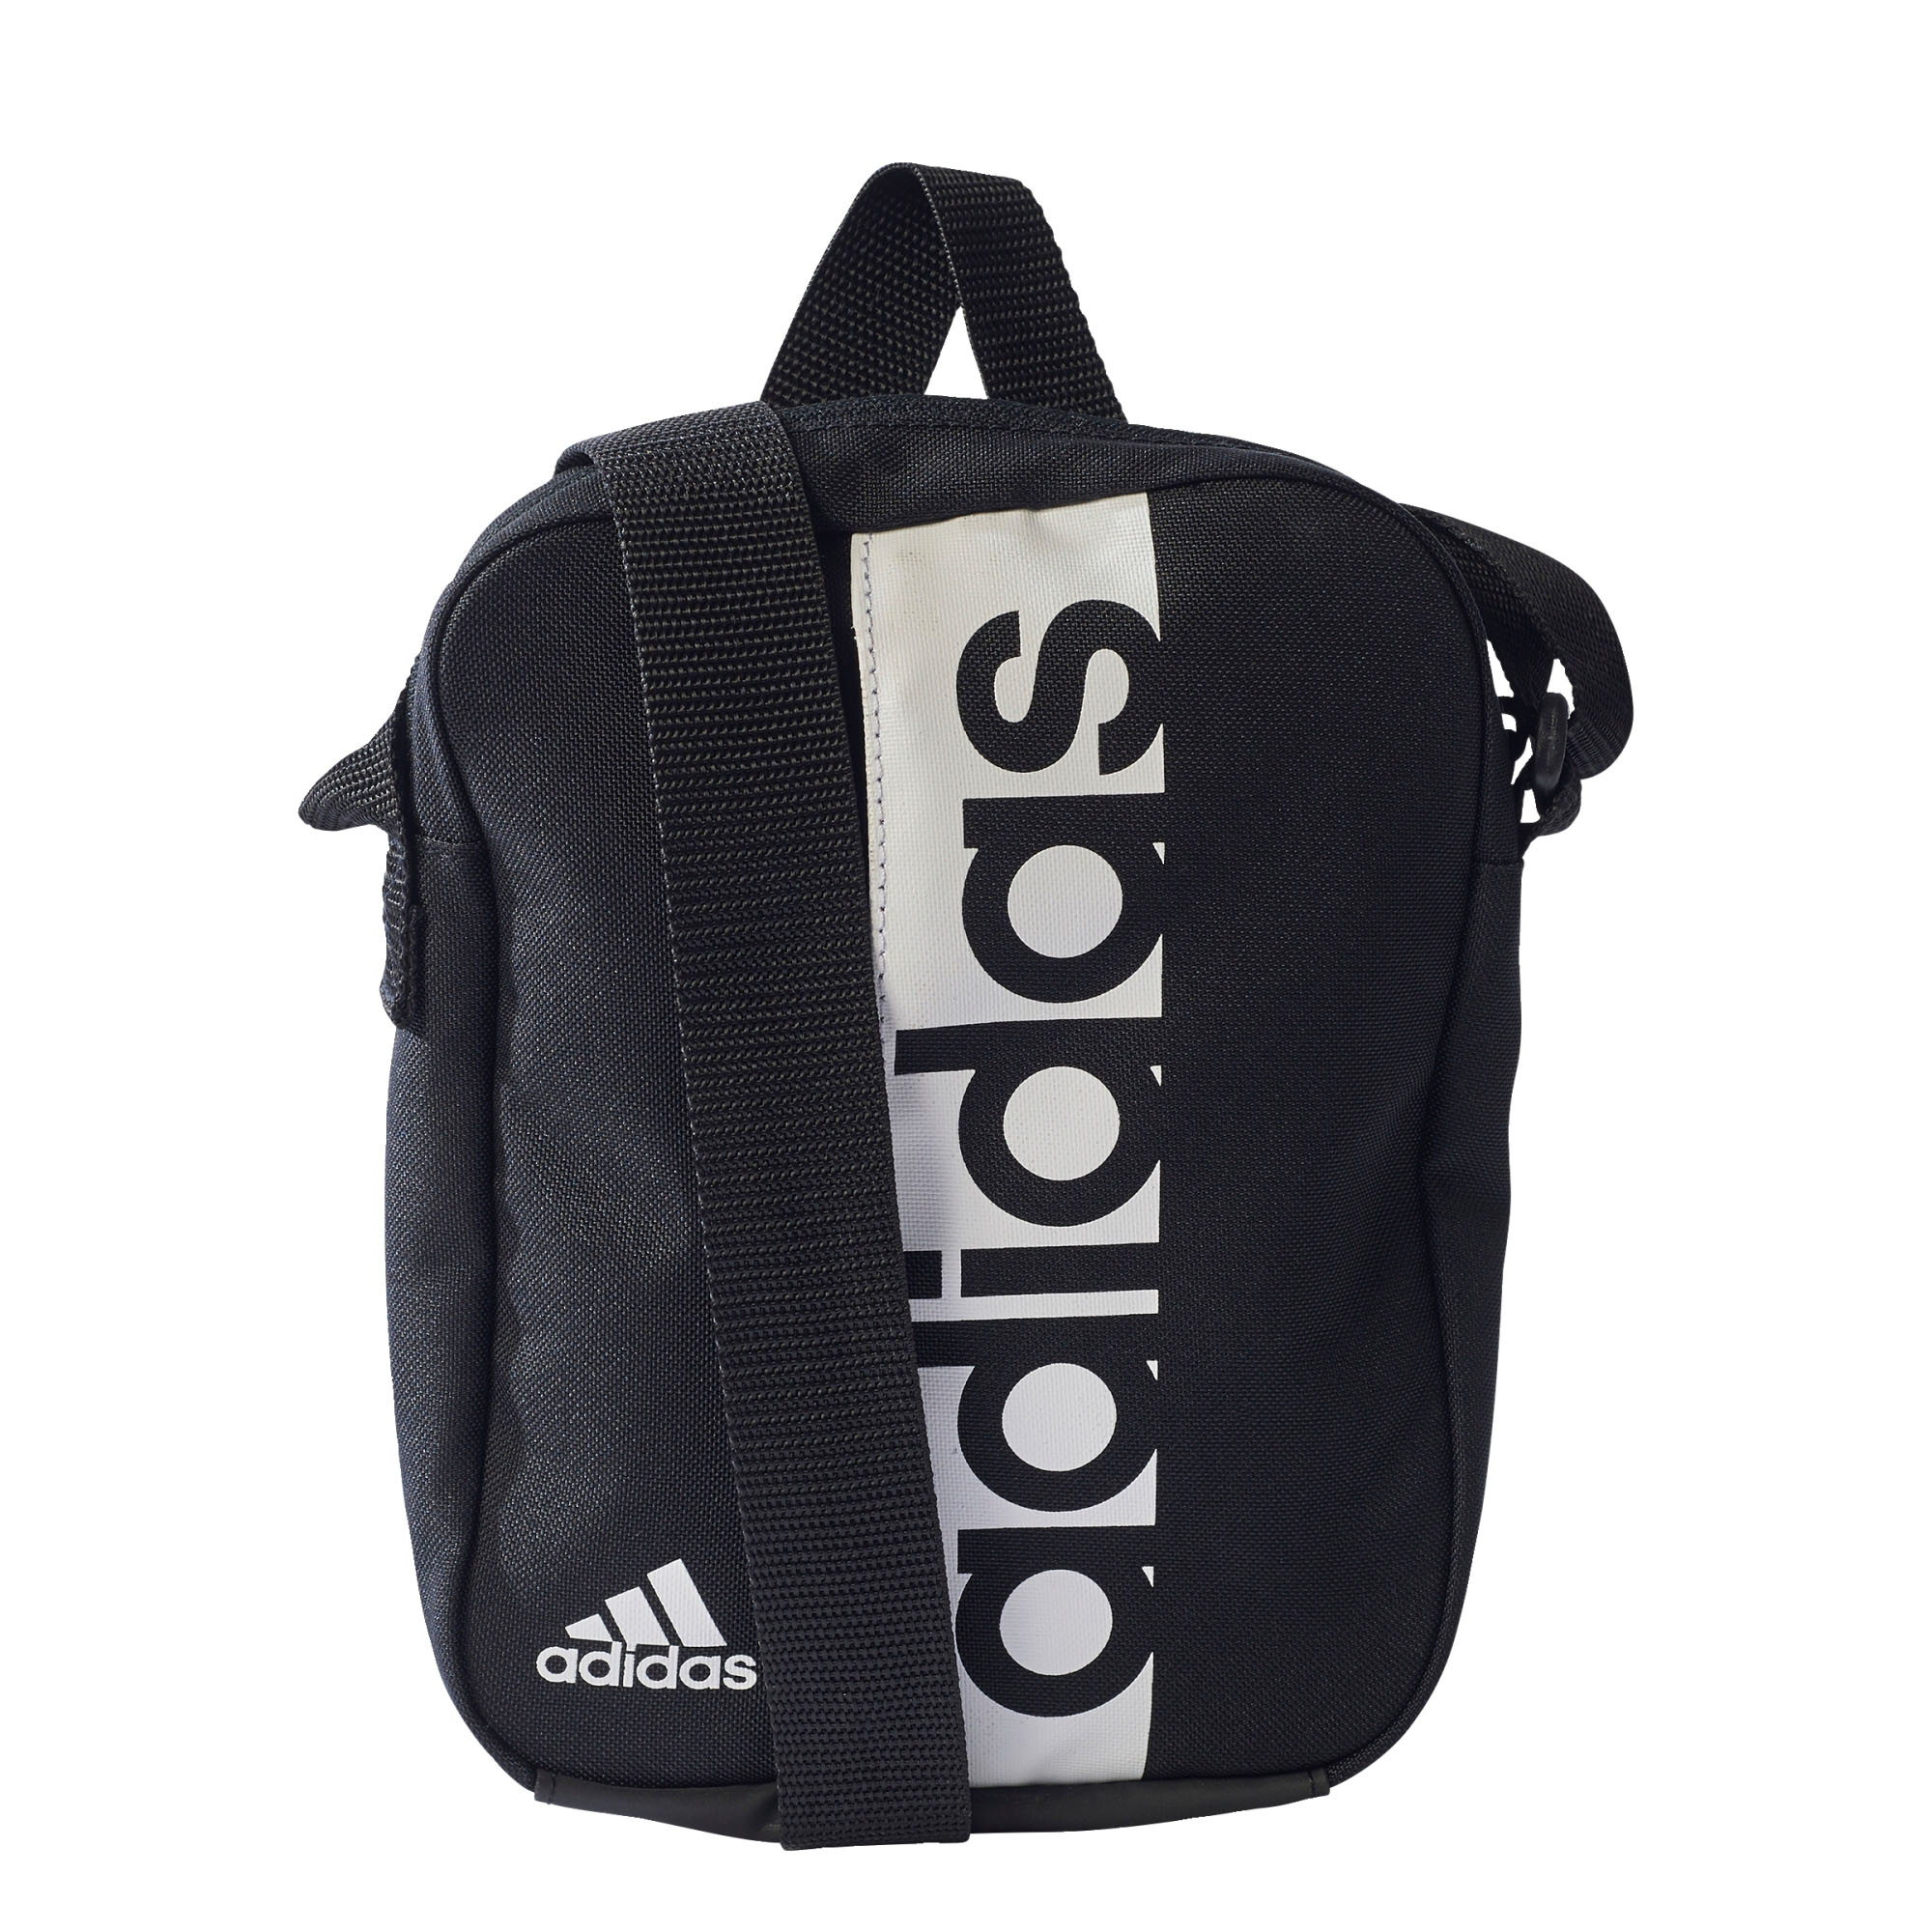 The adidas Performance Linear Organiser bag does exactly that with added  style. A great accessory to house your small valubles including keys 22a246707fac2